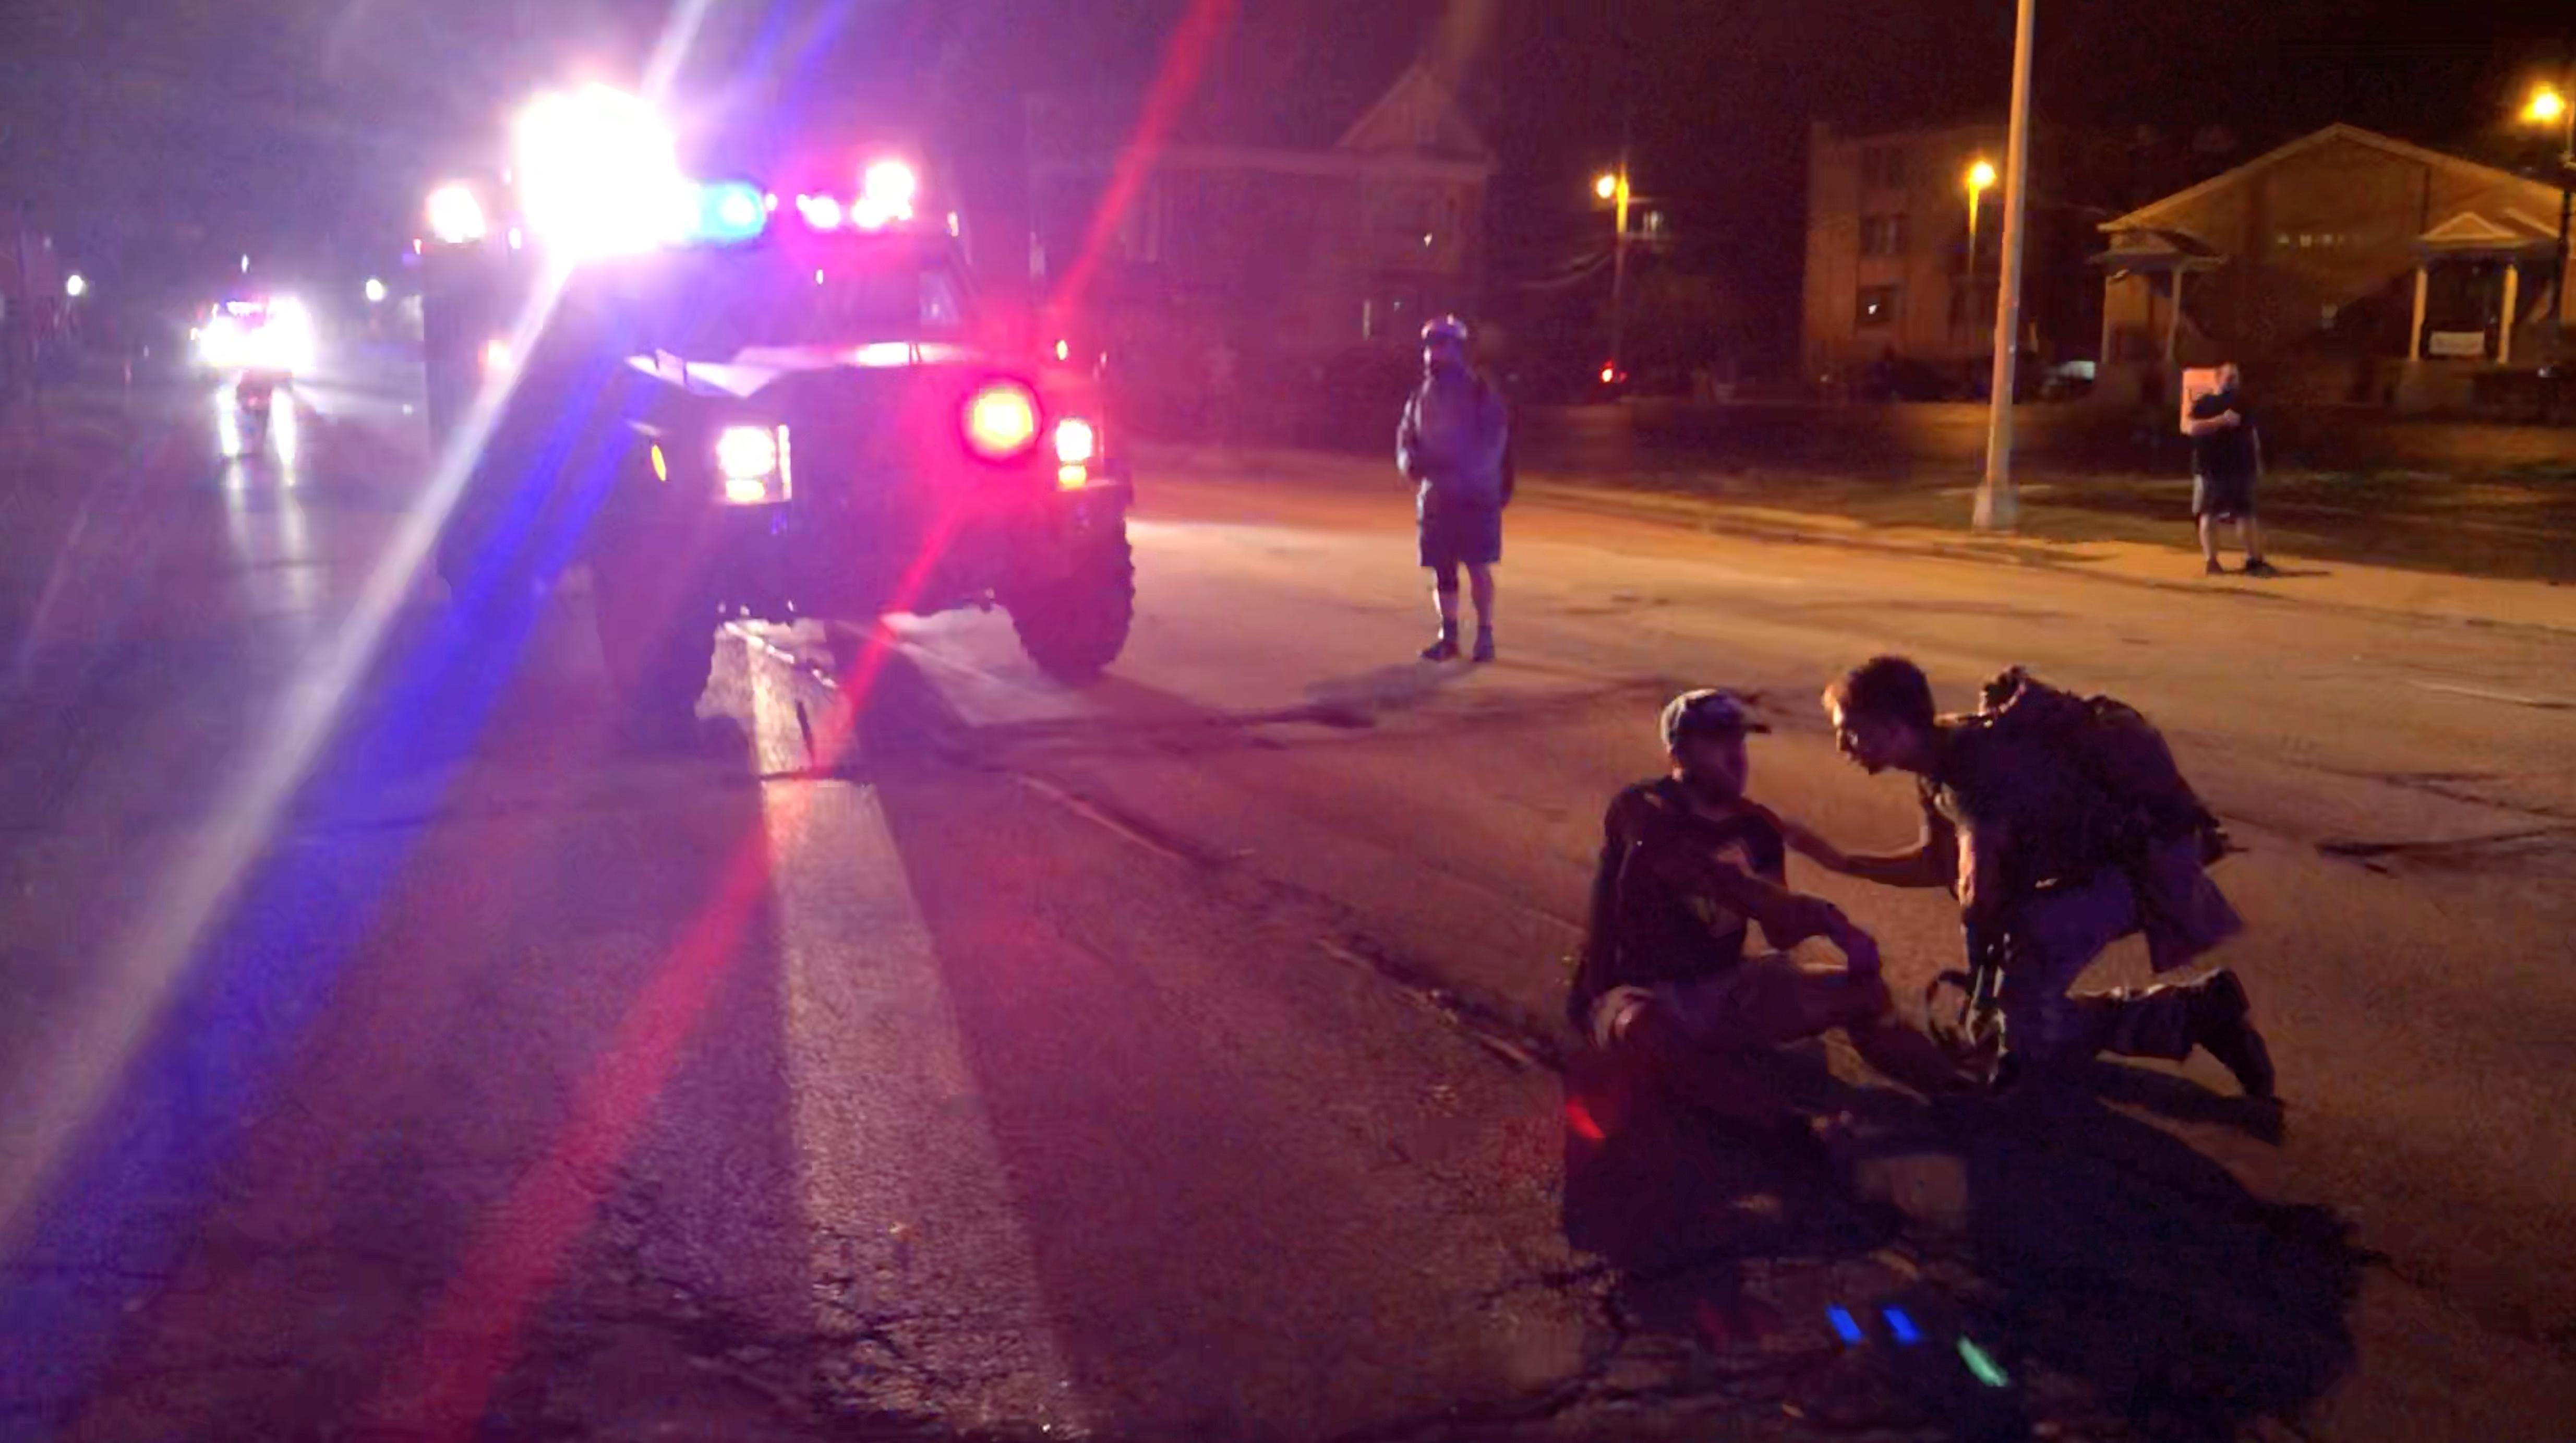 Two dead as gunfire erupts at Wisconsin protests over shooting of Black man - Reuters 2